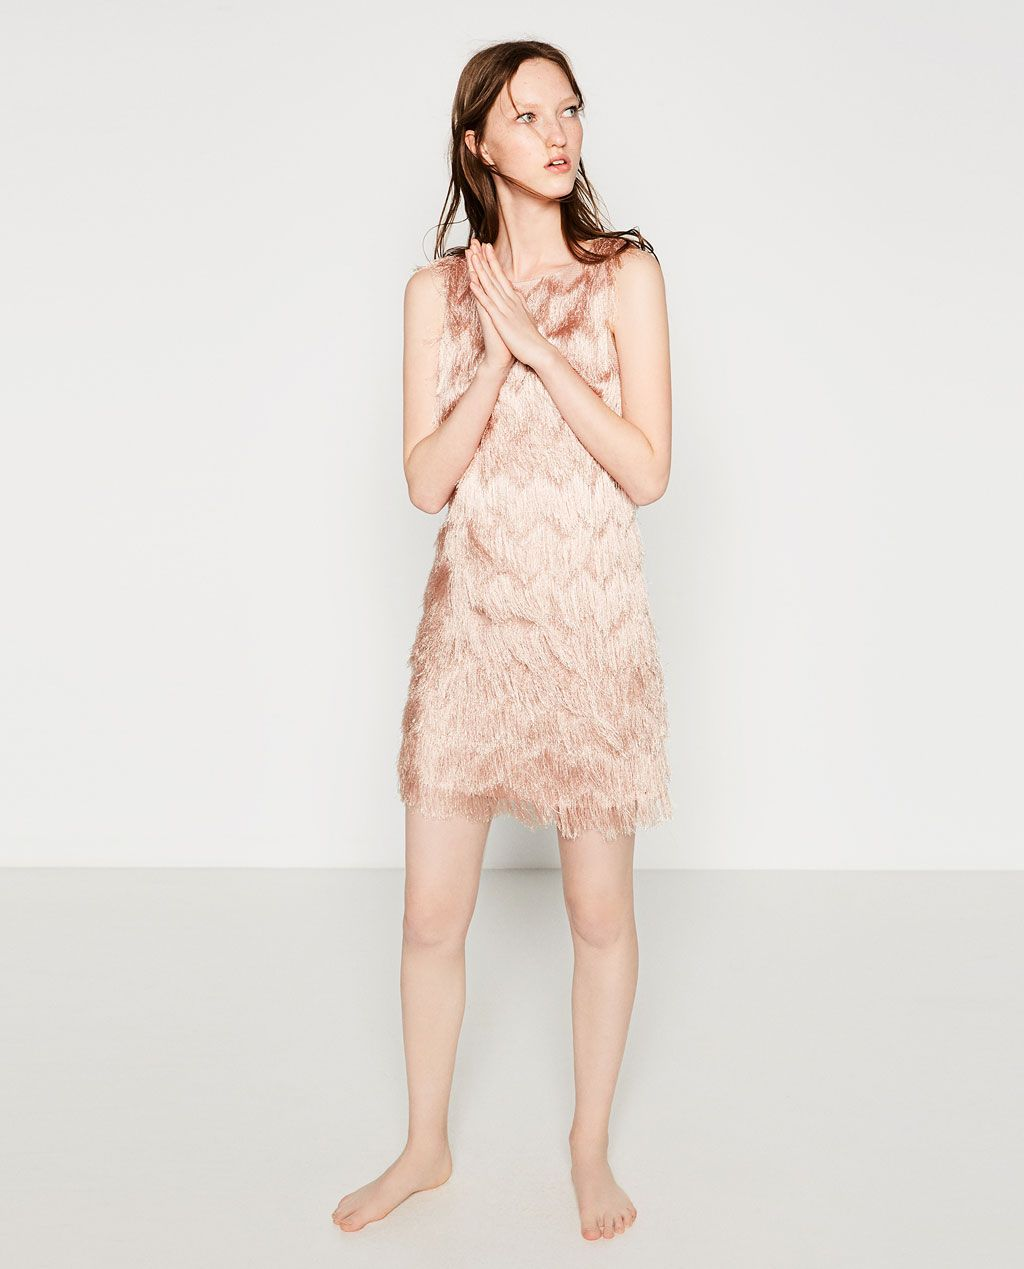 62f04959c FRINGED DRESS-View All-DRESSES-WOMAN-SALE | ZARA United States ...